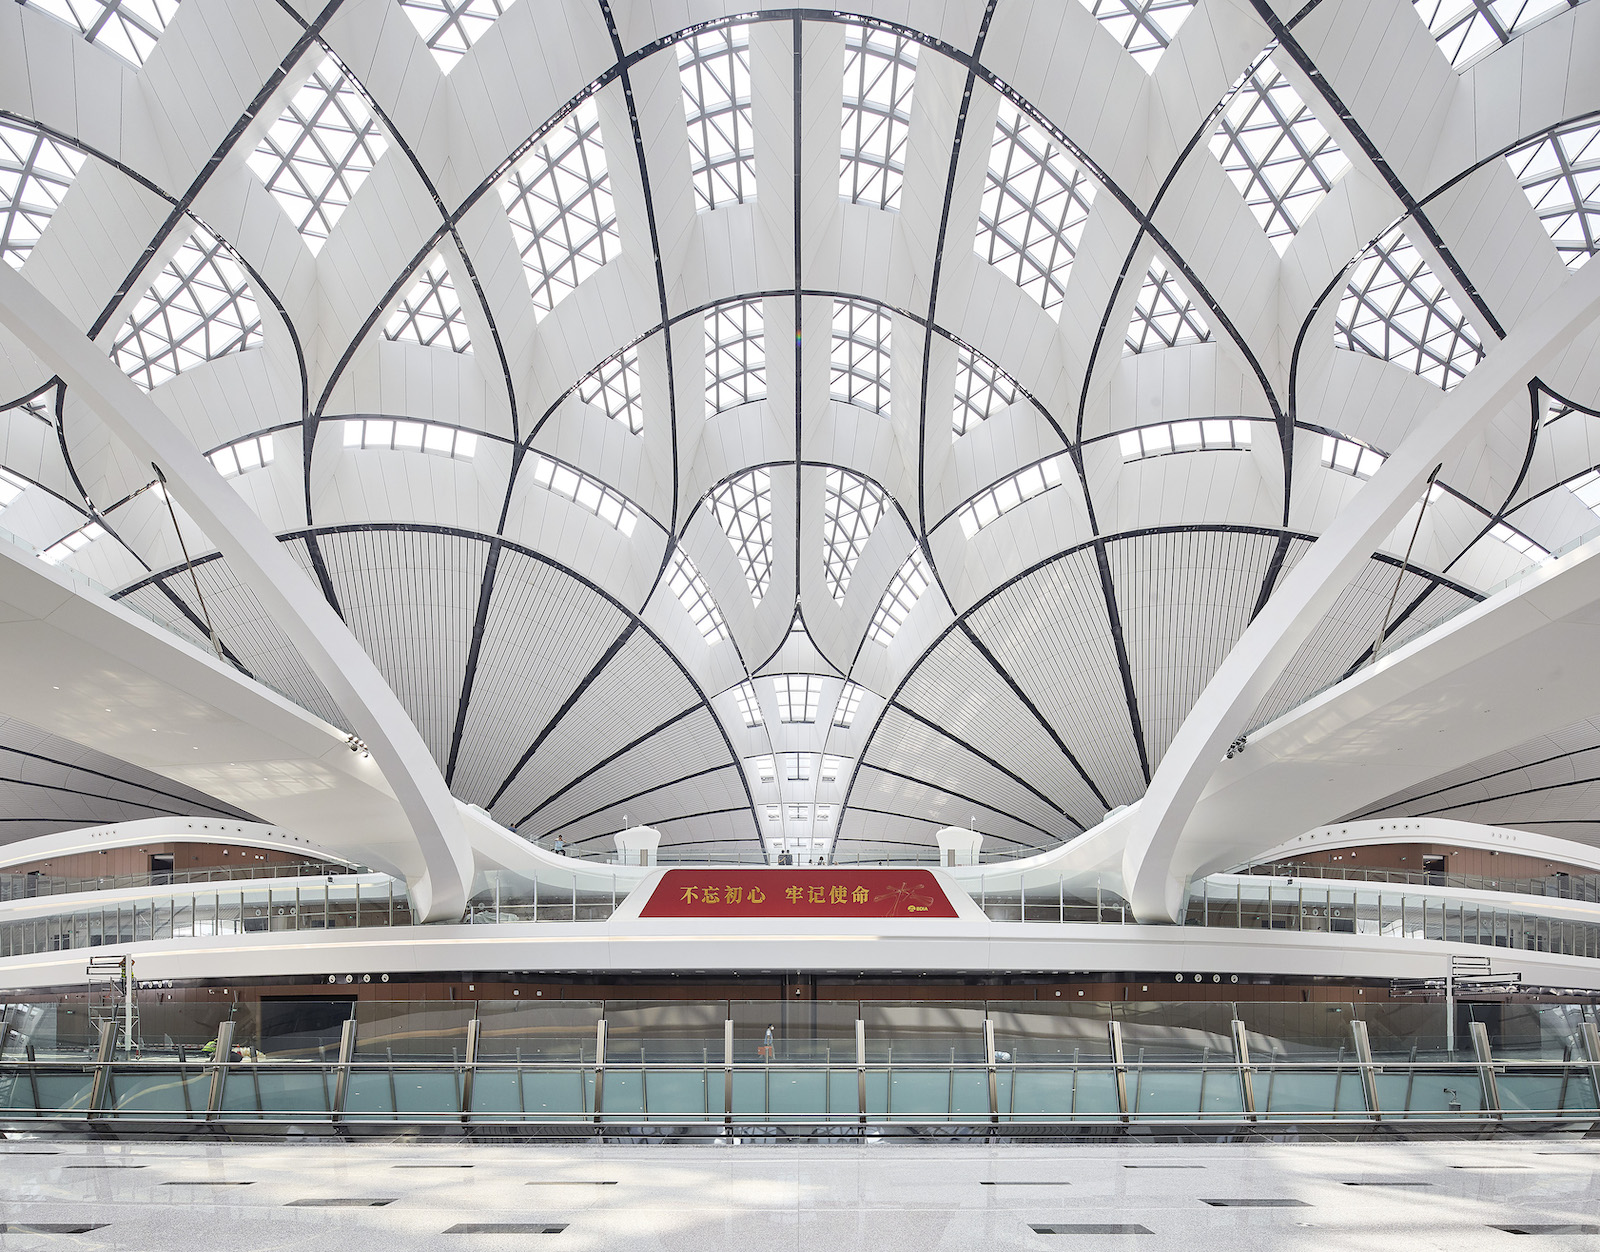 Baggage claim area with elaborate white geometric curving ceiling.